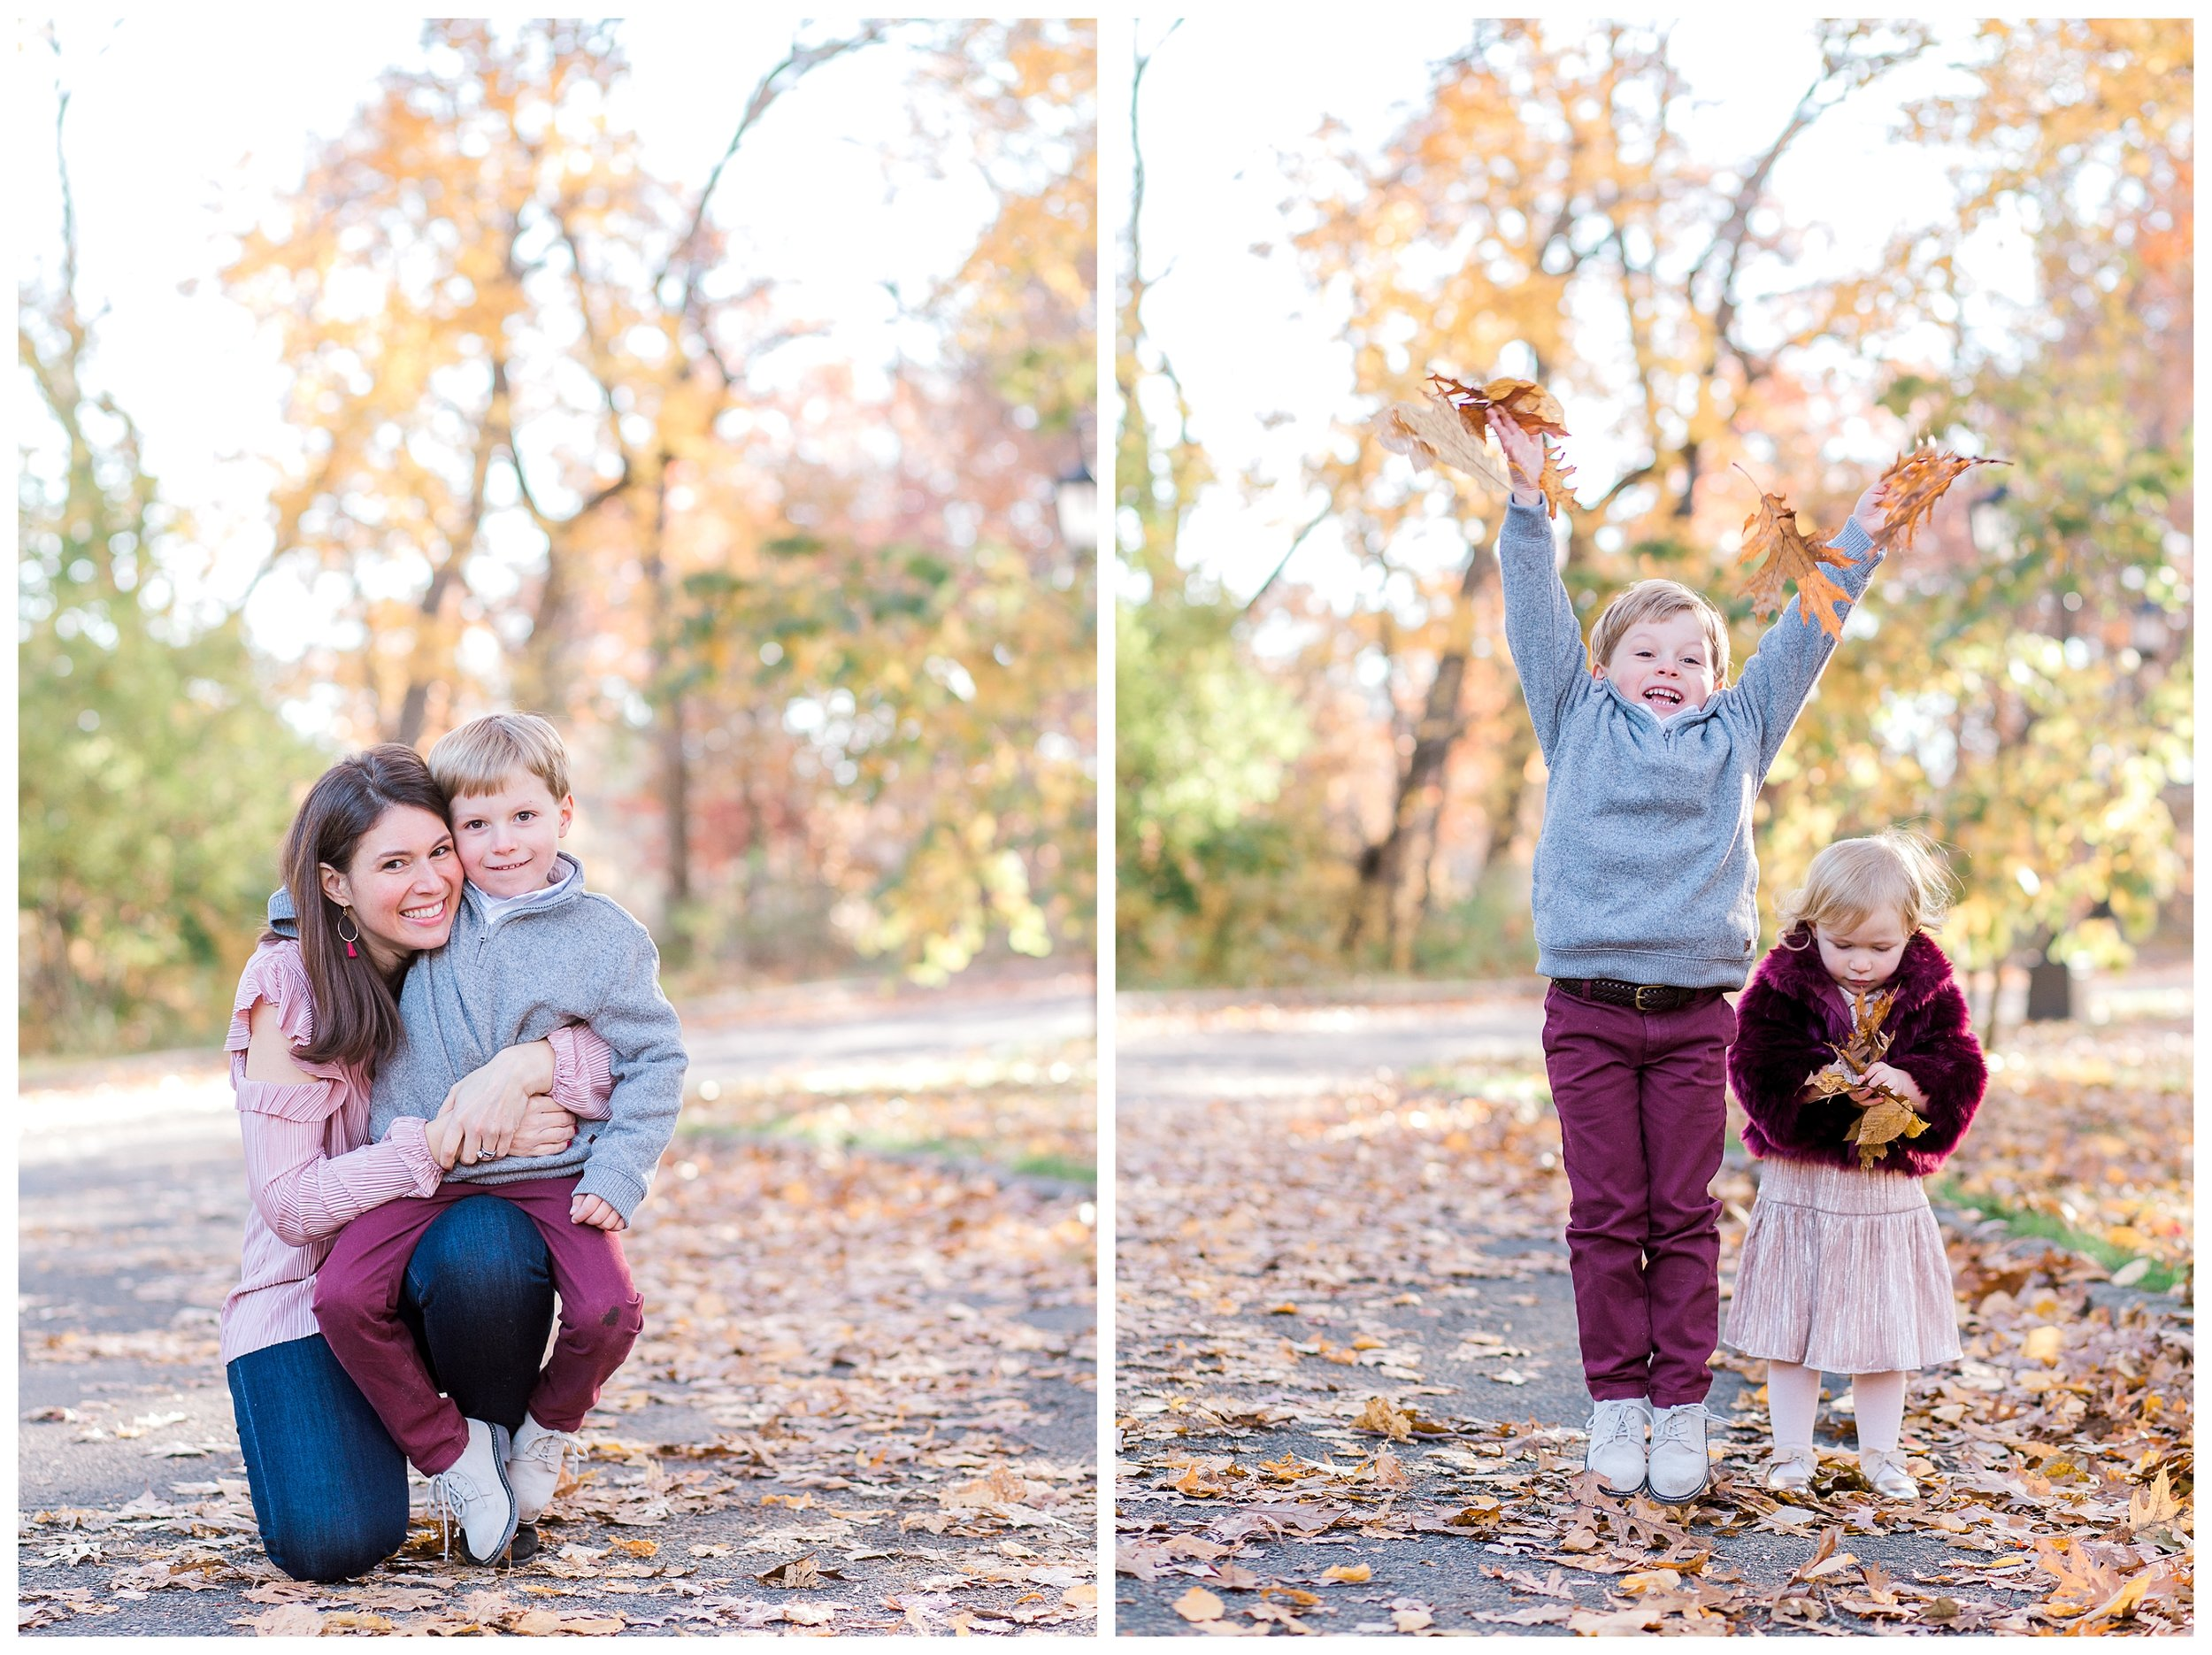 wellesley_fall_family_photographer_erica_pezente_photo (5).jpg